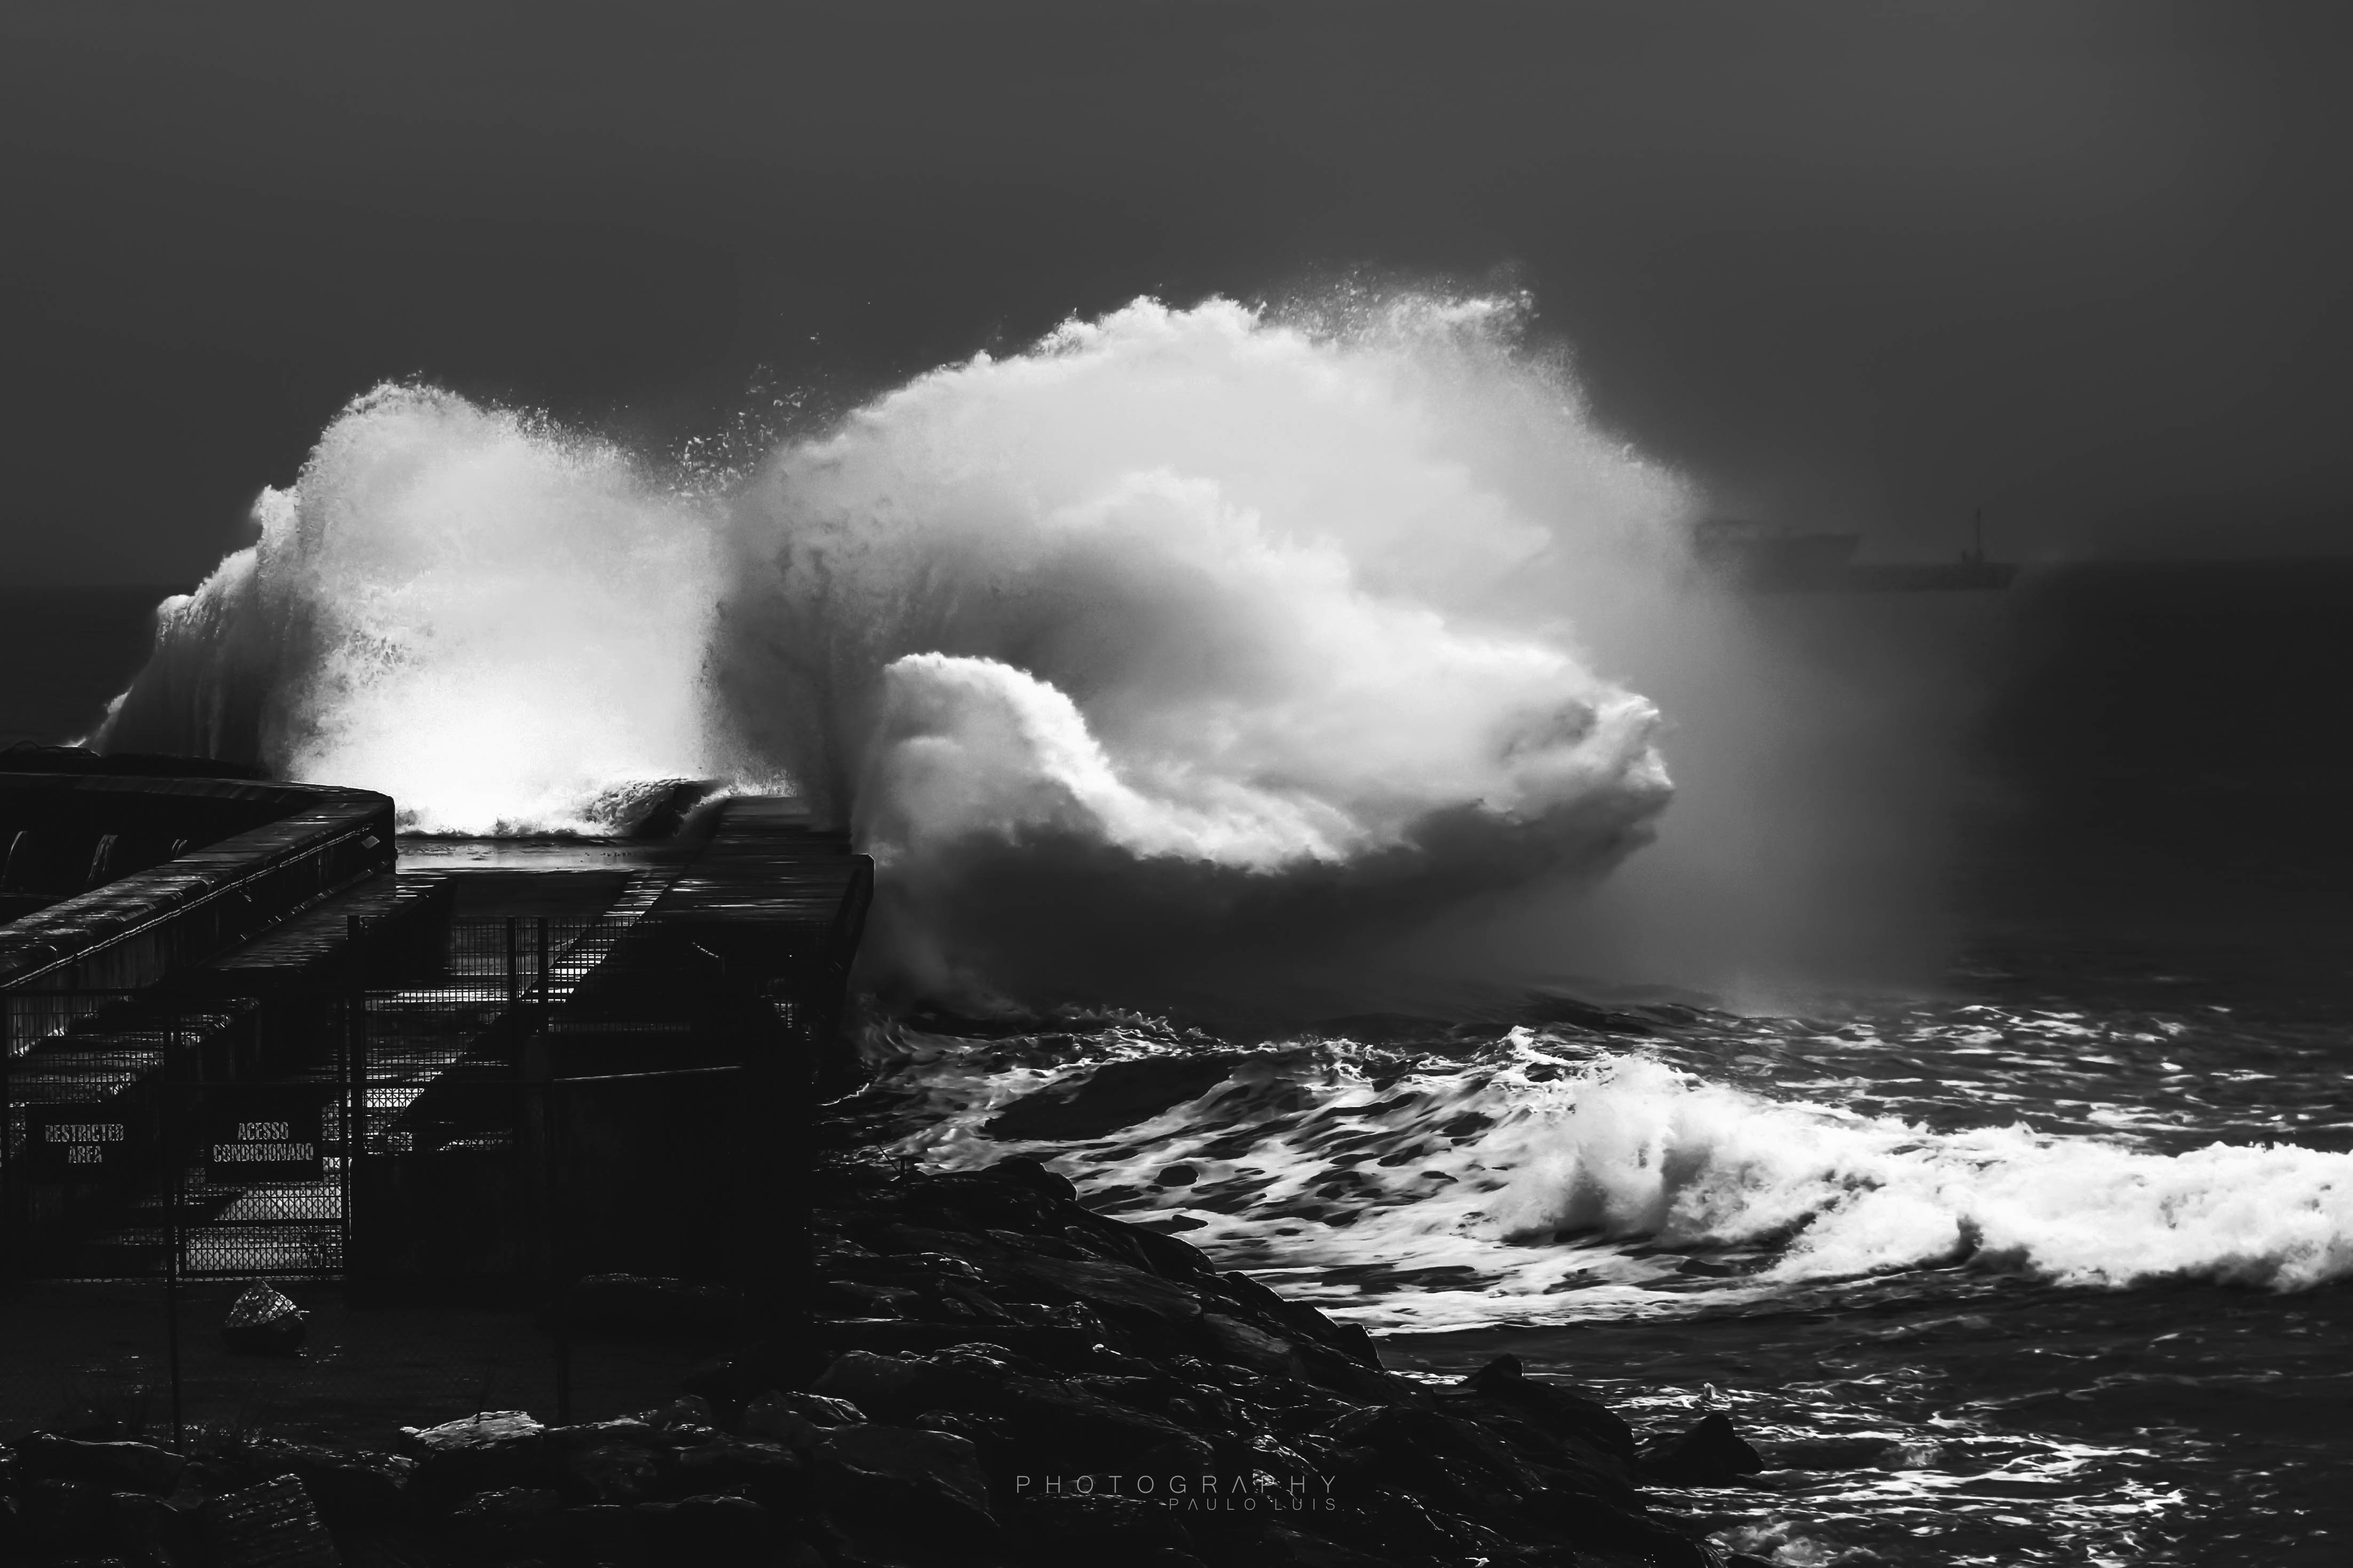 © Paulo Luis - scary wave